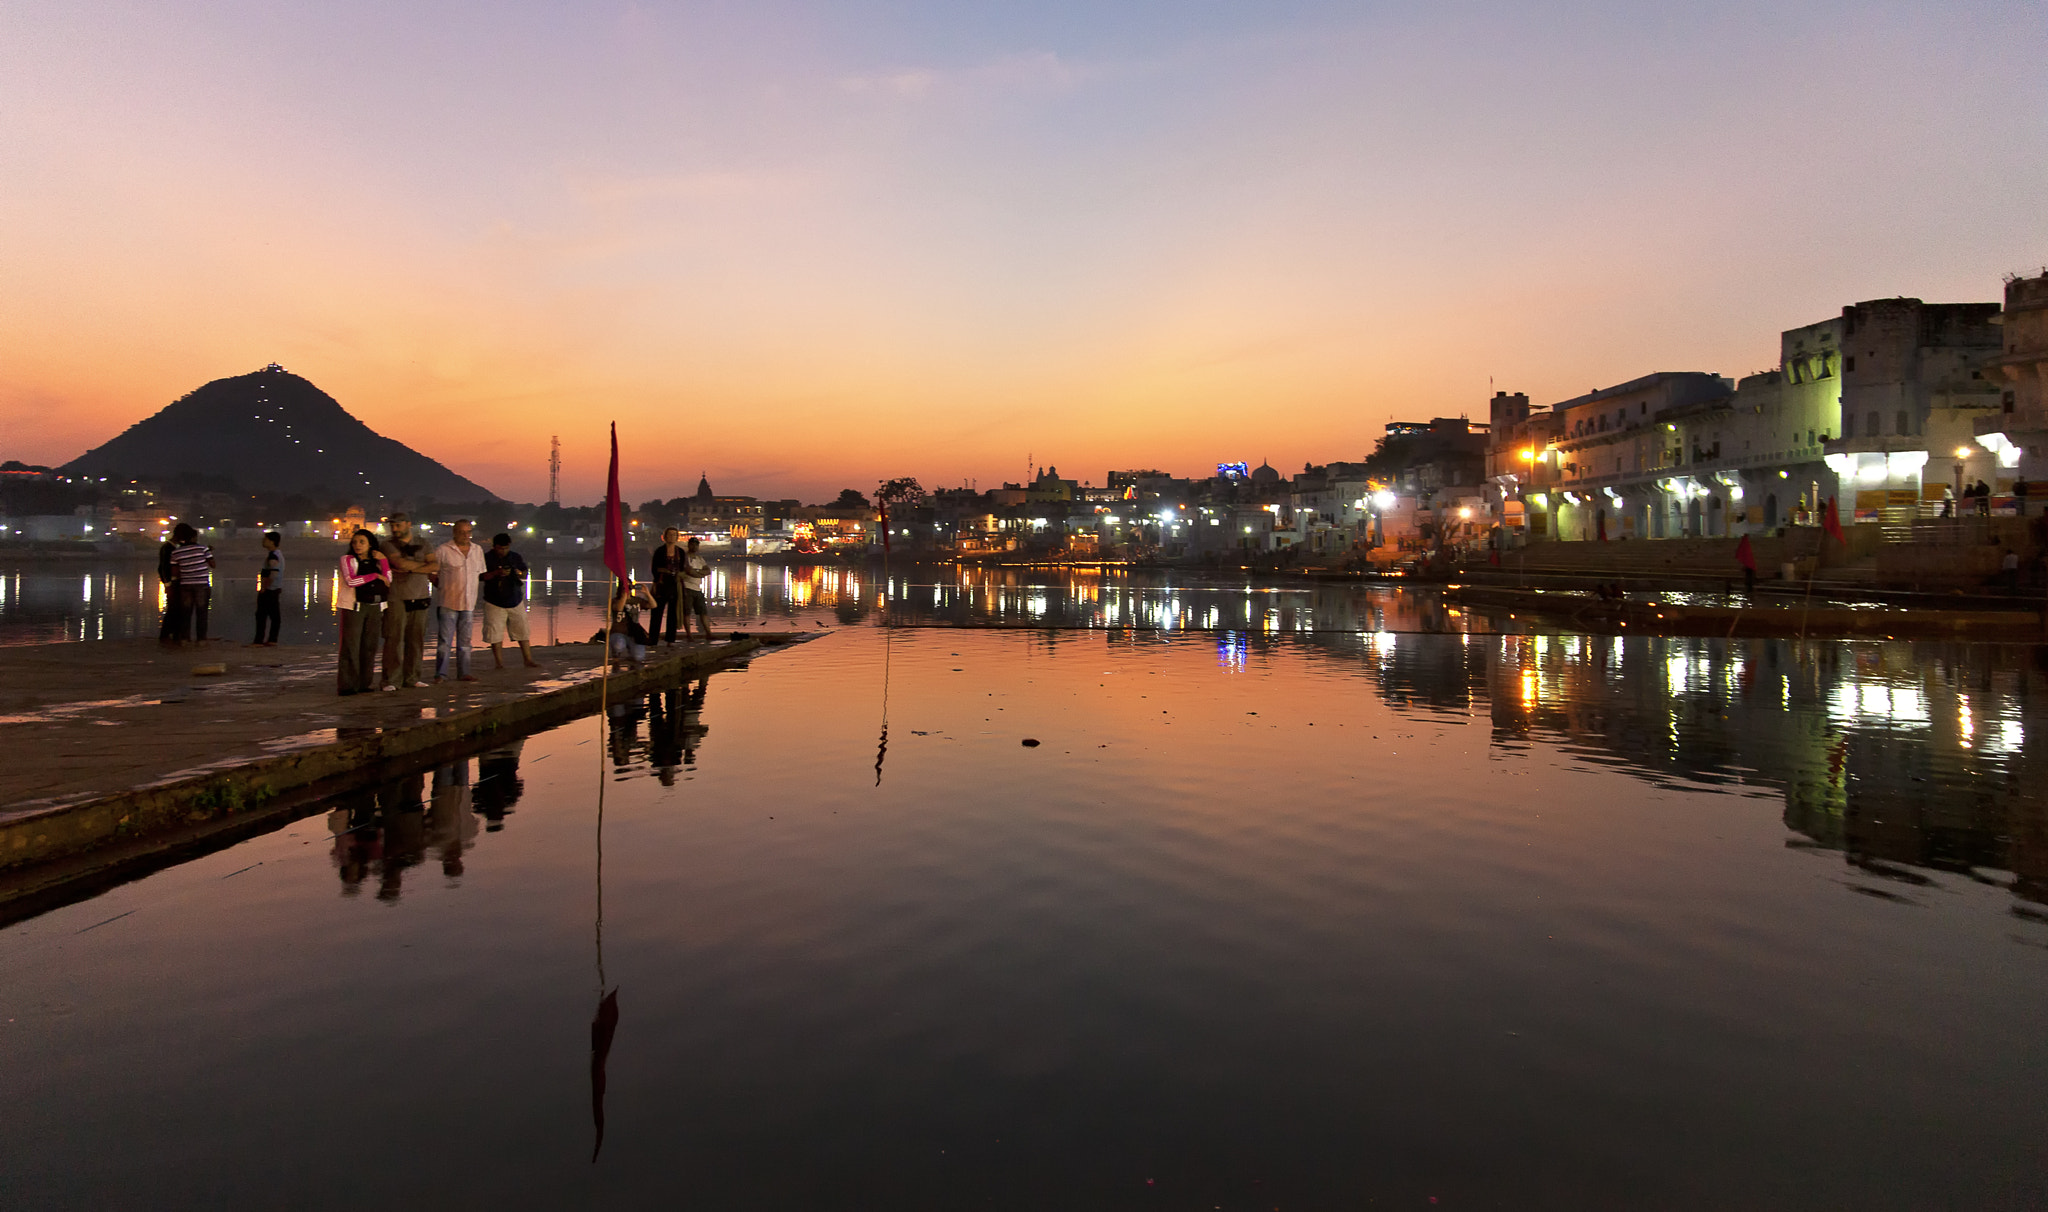 Photograph An Evening in Pushkar by Jassi Oberai on 500px